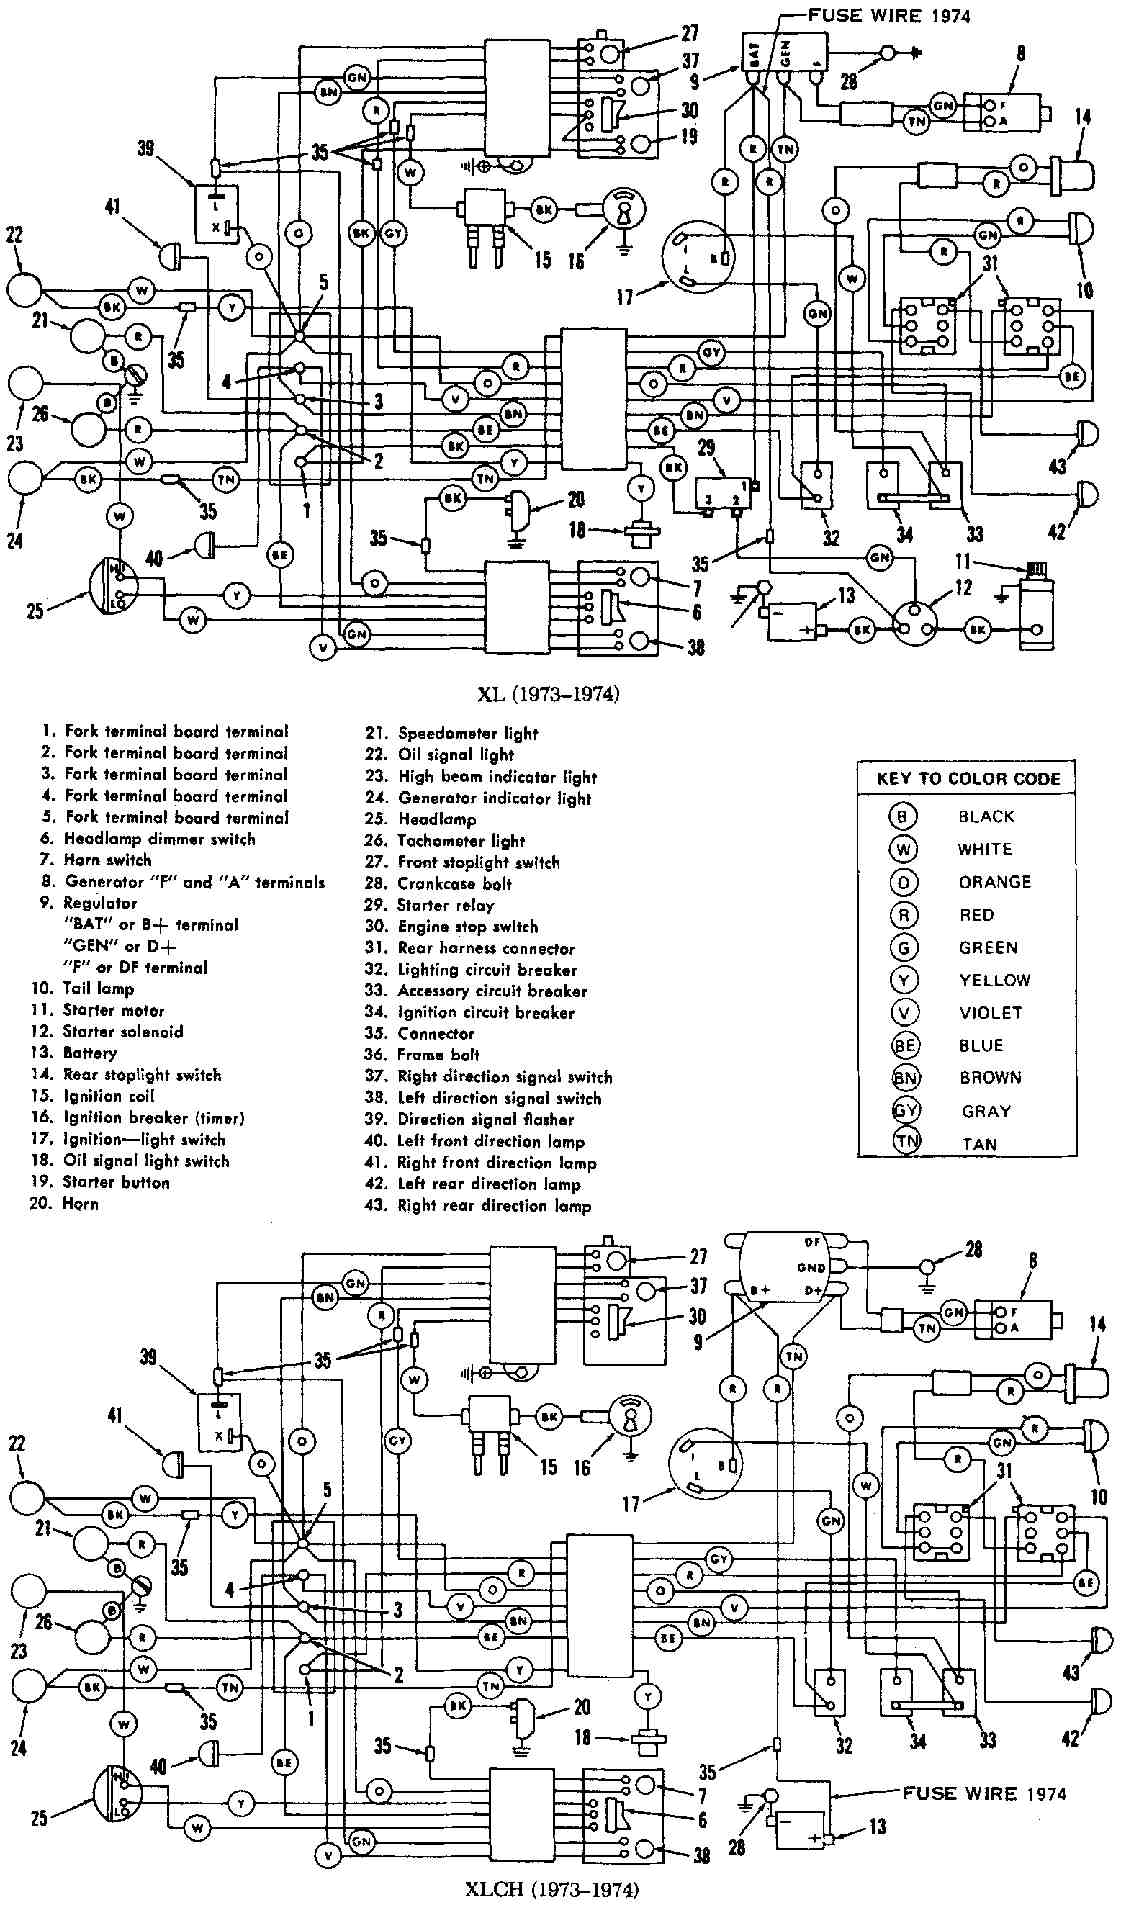 harley davidson motorcycle manuals pdf wiring diagrams fault codes rh motorcycle manual com 1968 Harley Dirt Bike 1968 Harley Sportster Original Black